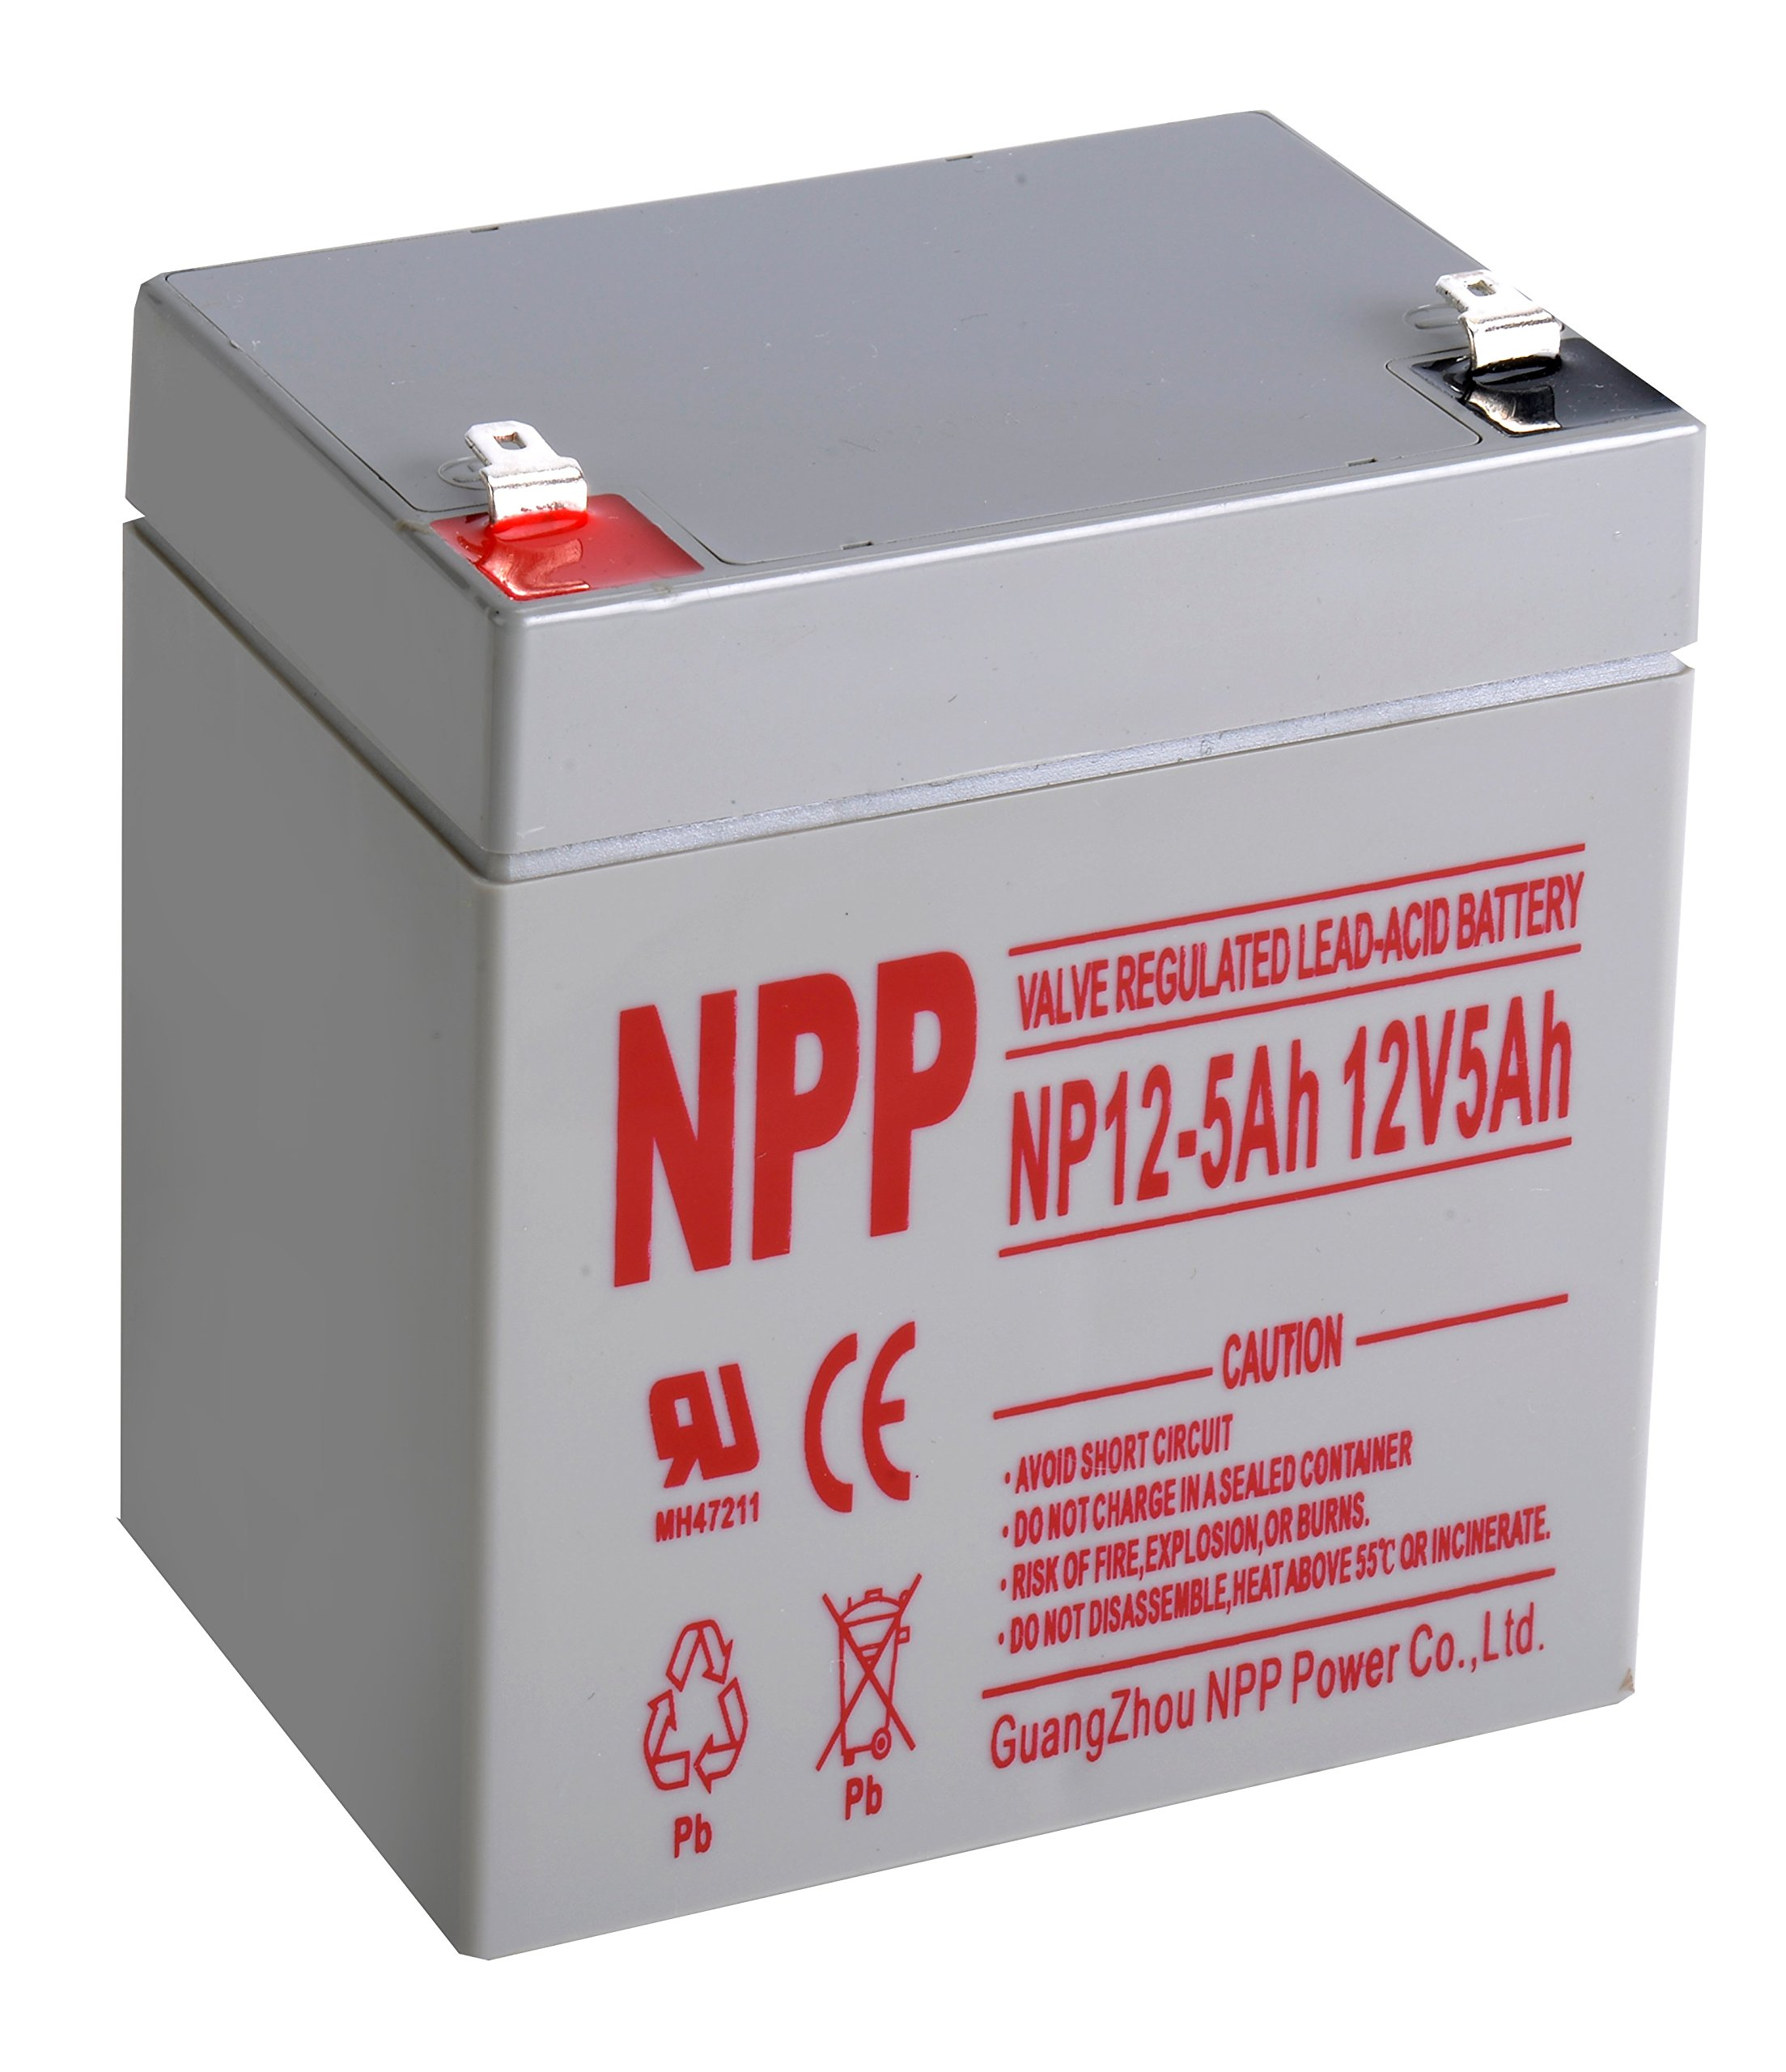 NPP NP12-5Ah 12V 5Ah Rechargeable Sealed Lead Acid Battery F1 Terminals